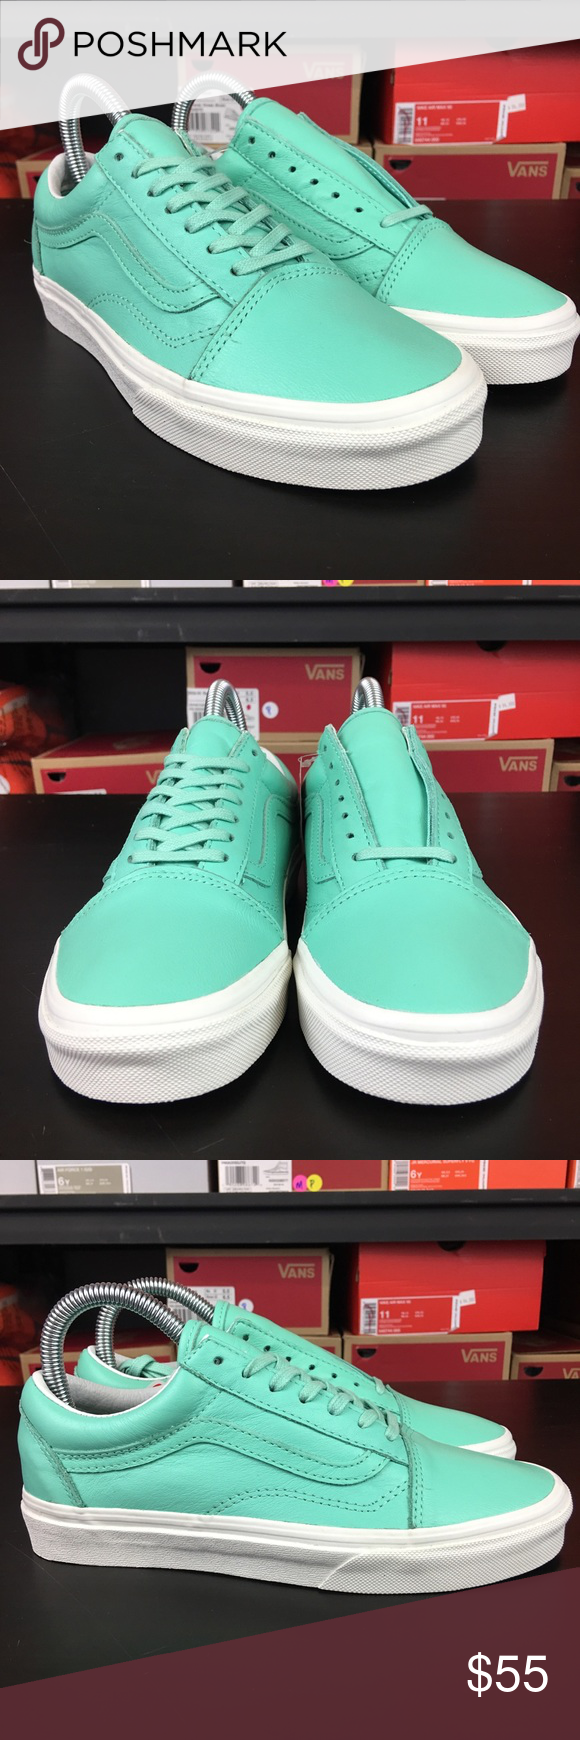 2807d2b777 Vans Old Skool Pastel Pack Ice Green Mint Women s Brand new with box ...